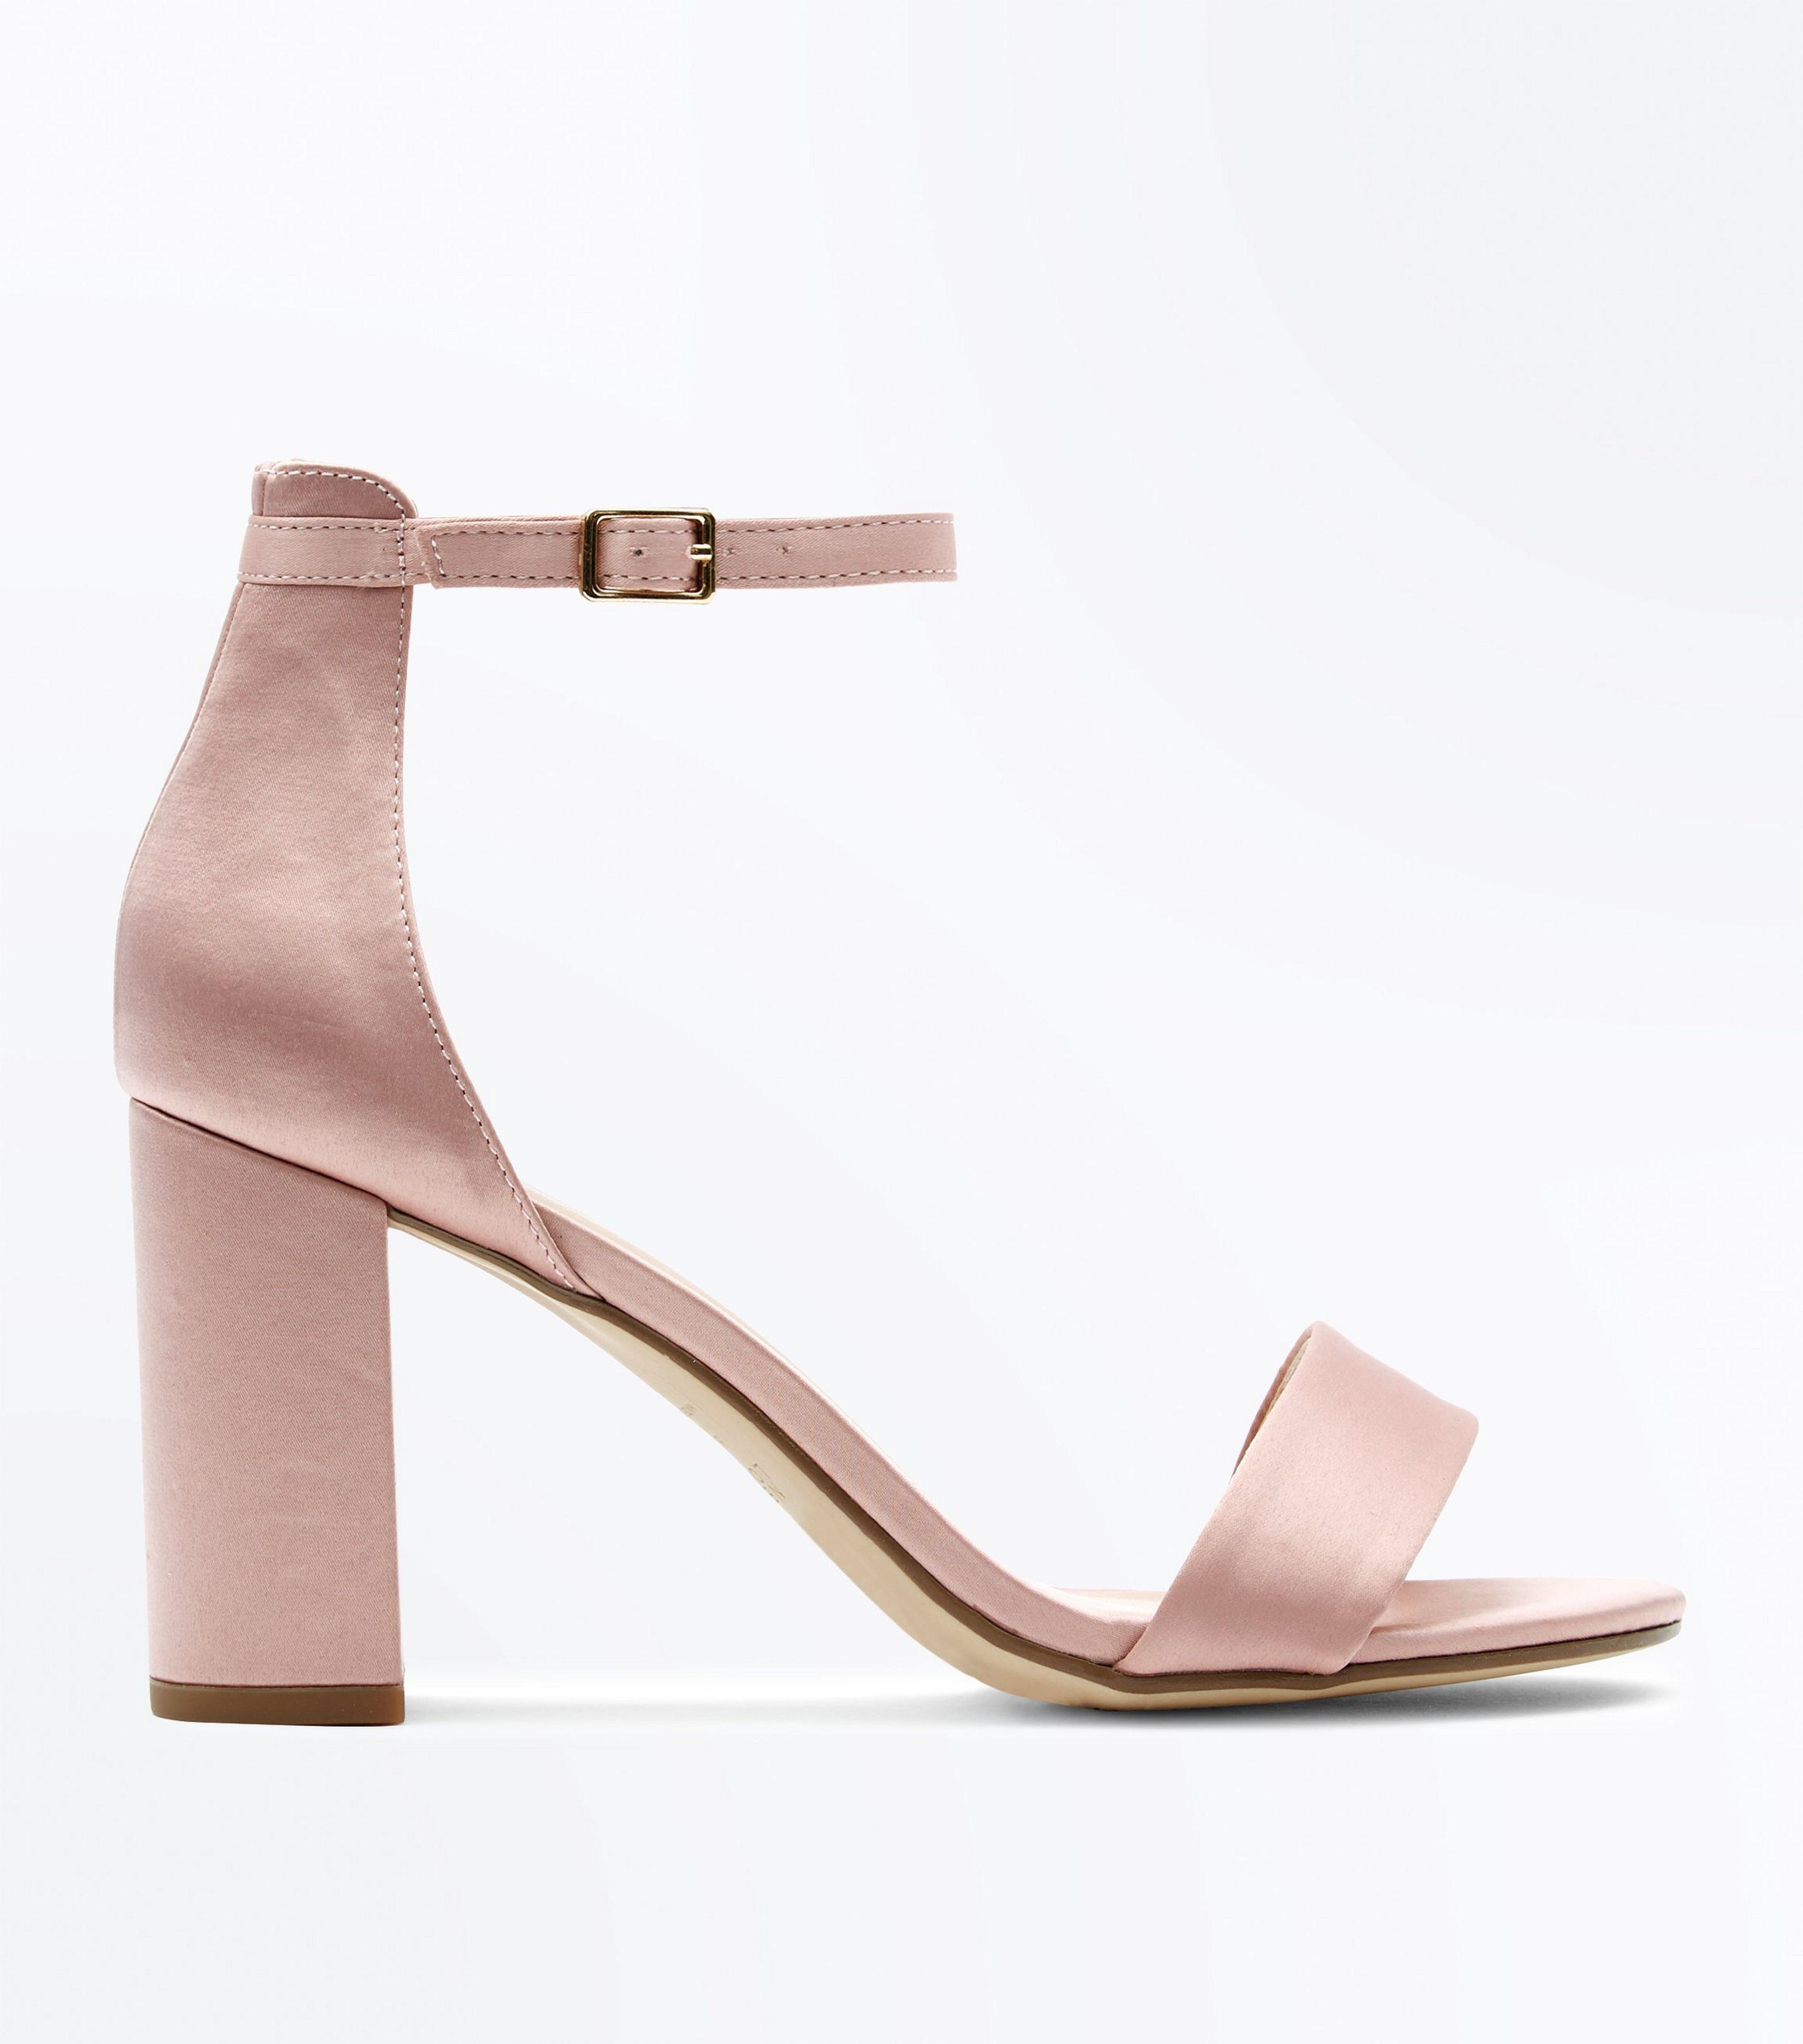 02f49792e44 New Look Wide Fit Nude Satin Ankle Strap Block Heels - Lyst